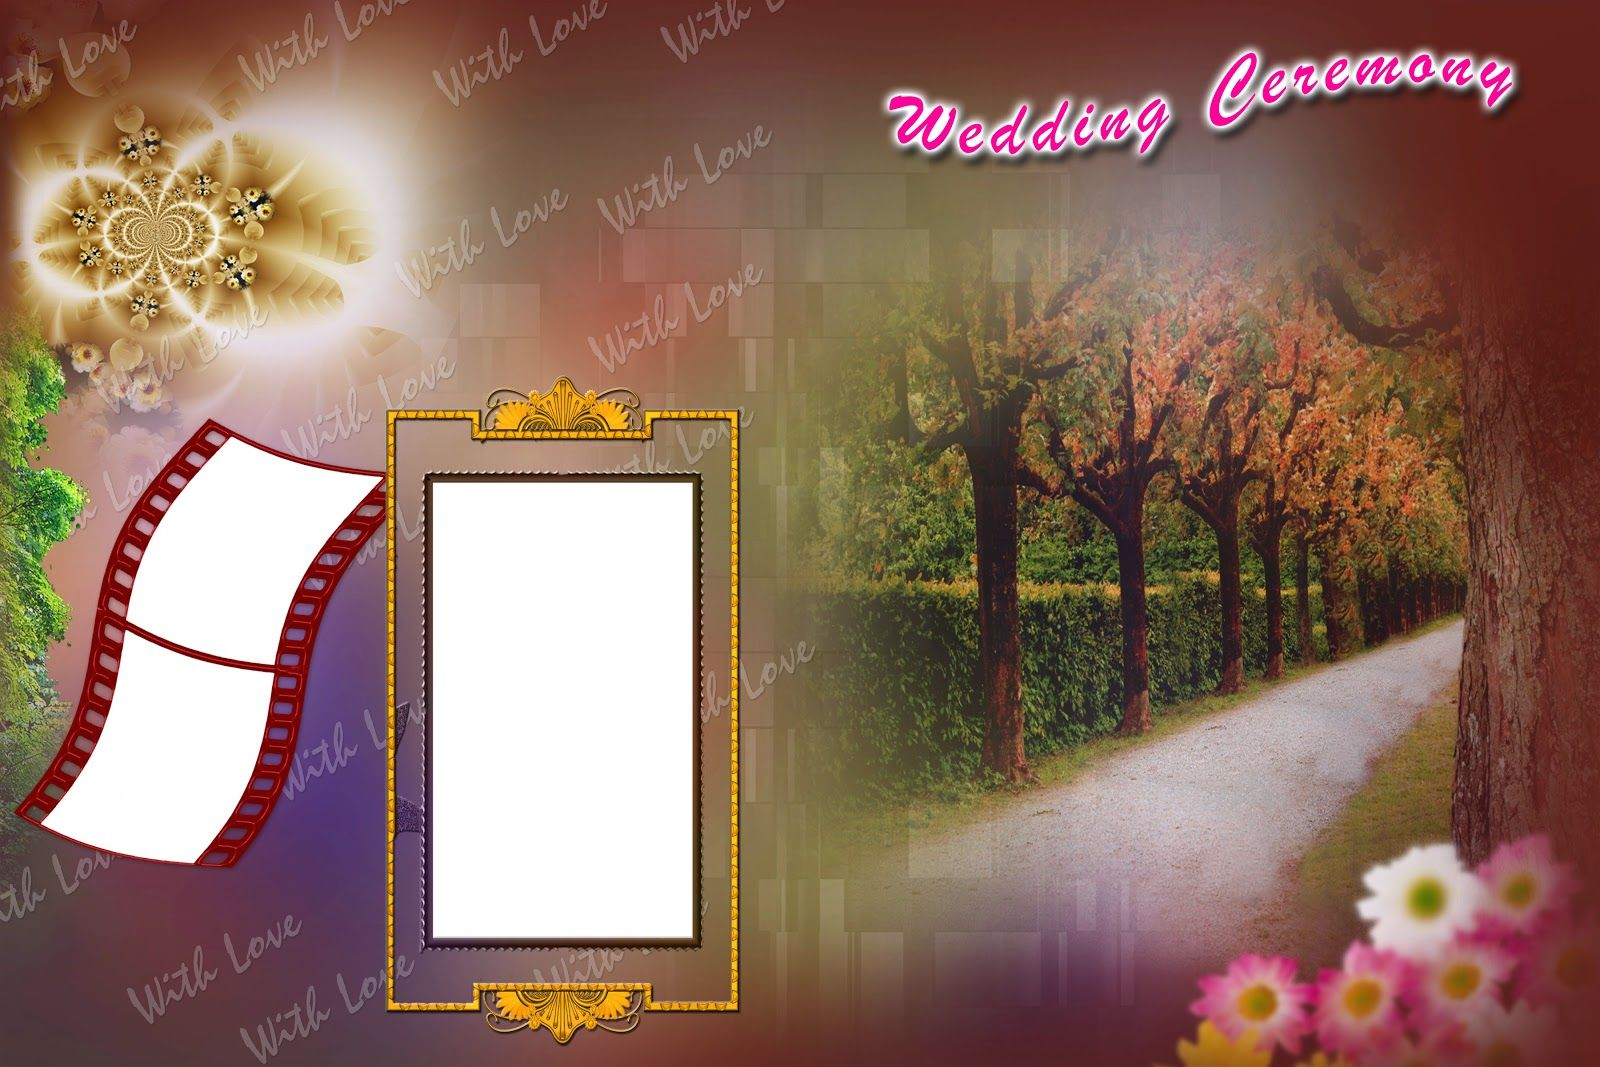 free wedding invitation psd%0A Guys for your lovely new wedding studio backgrounds for photo editing psd  file i free wedding templates psd free psd web templates backgrounds for  diwali on